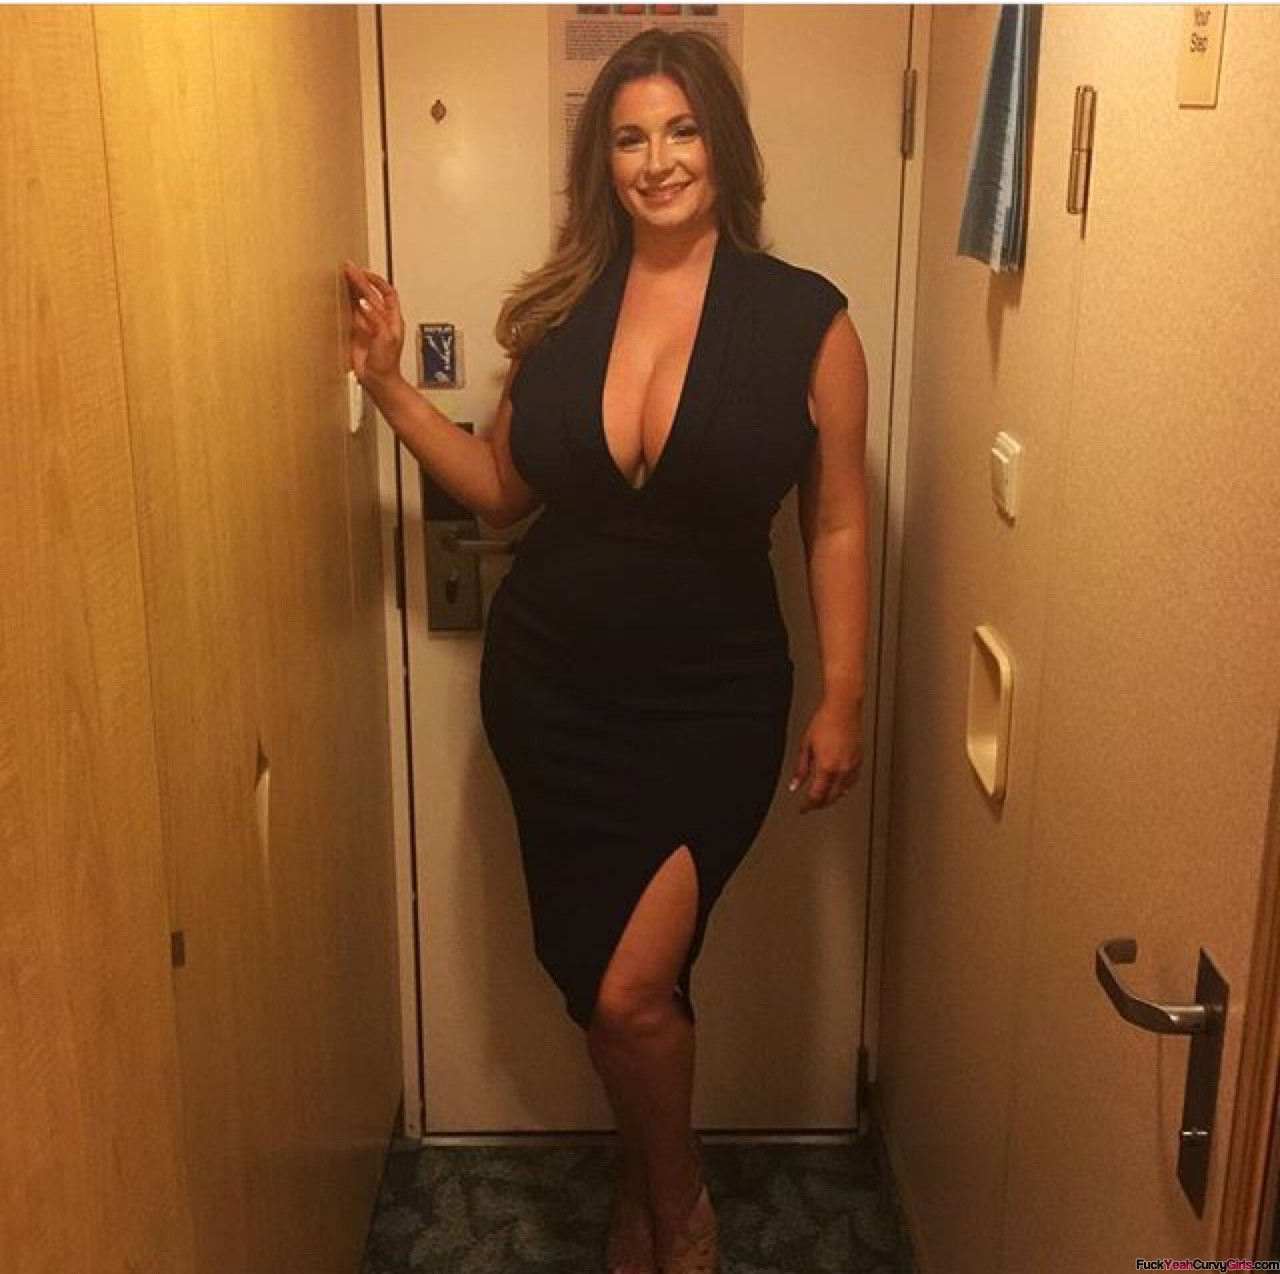 Your Busty women in dresses gallery